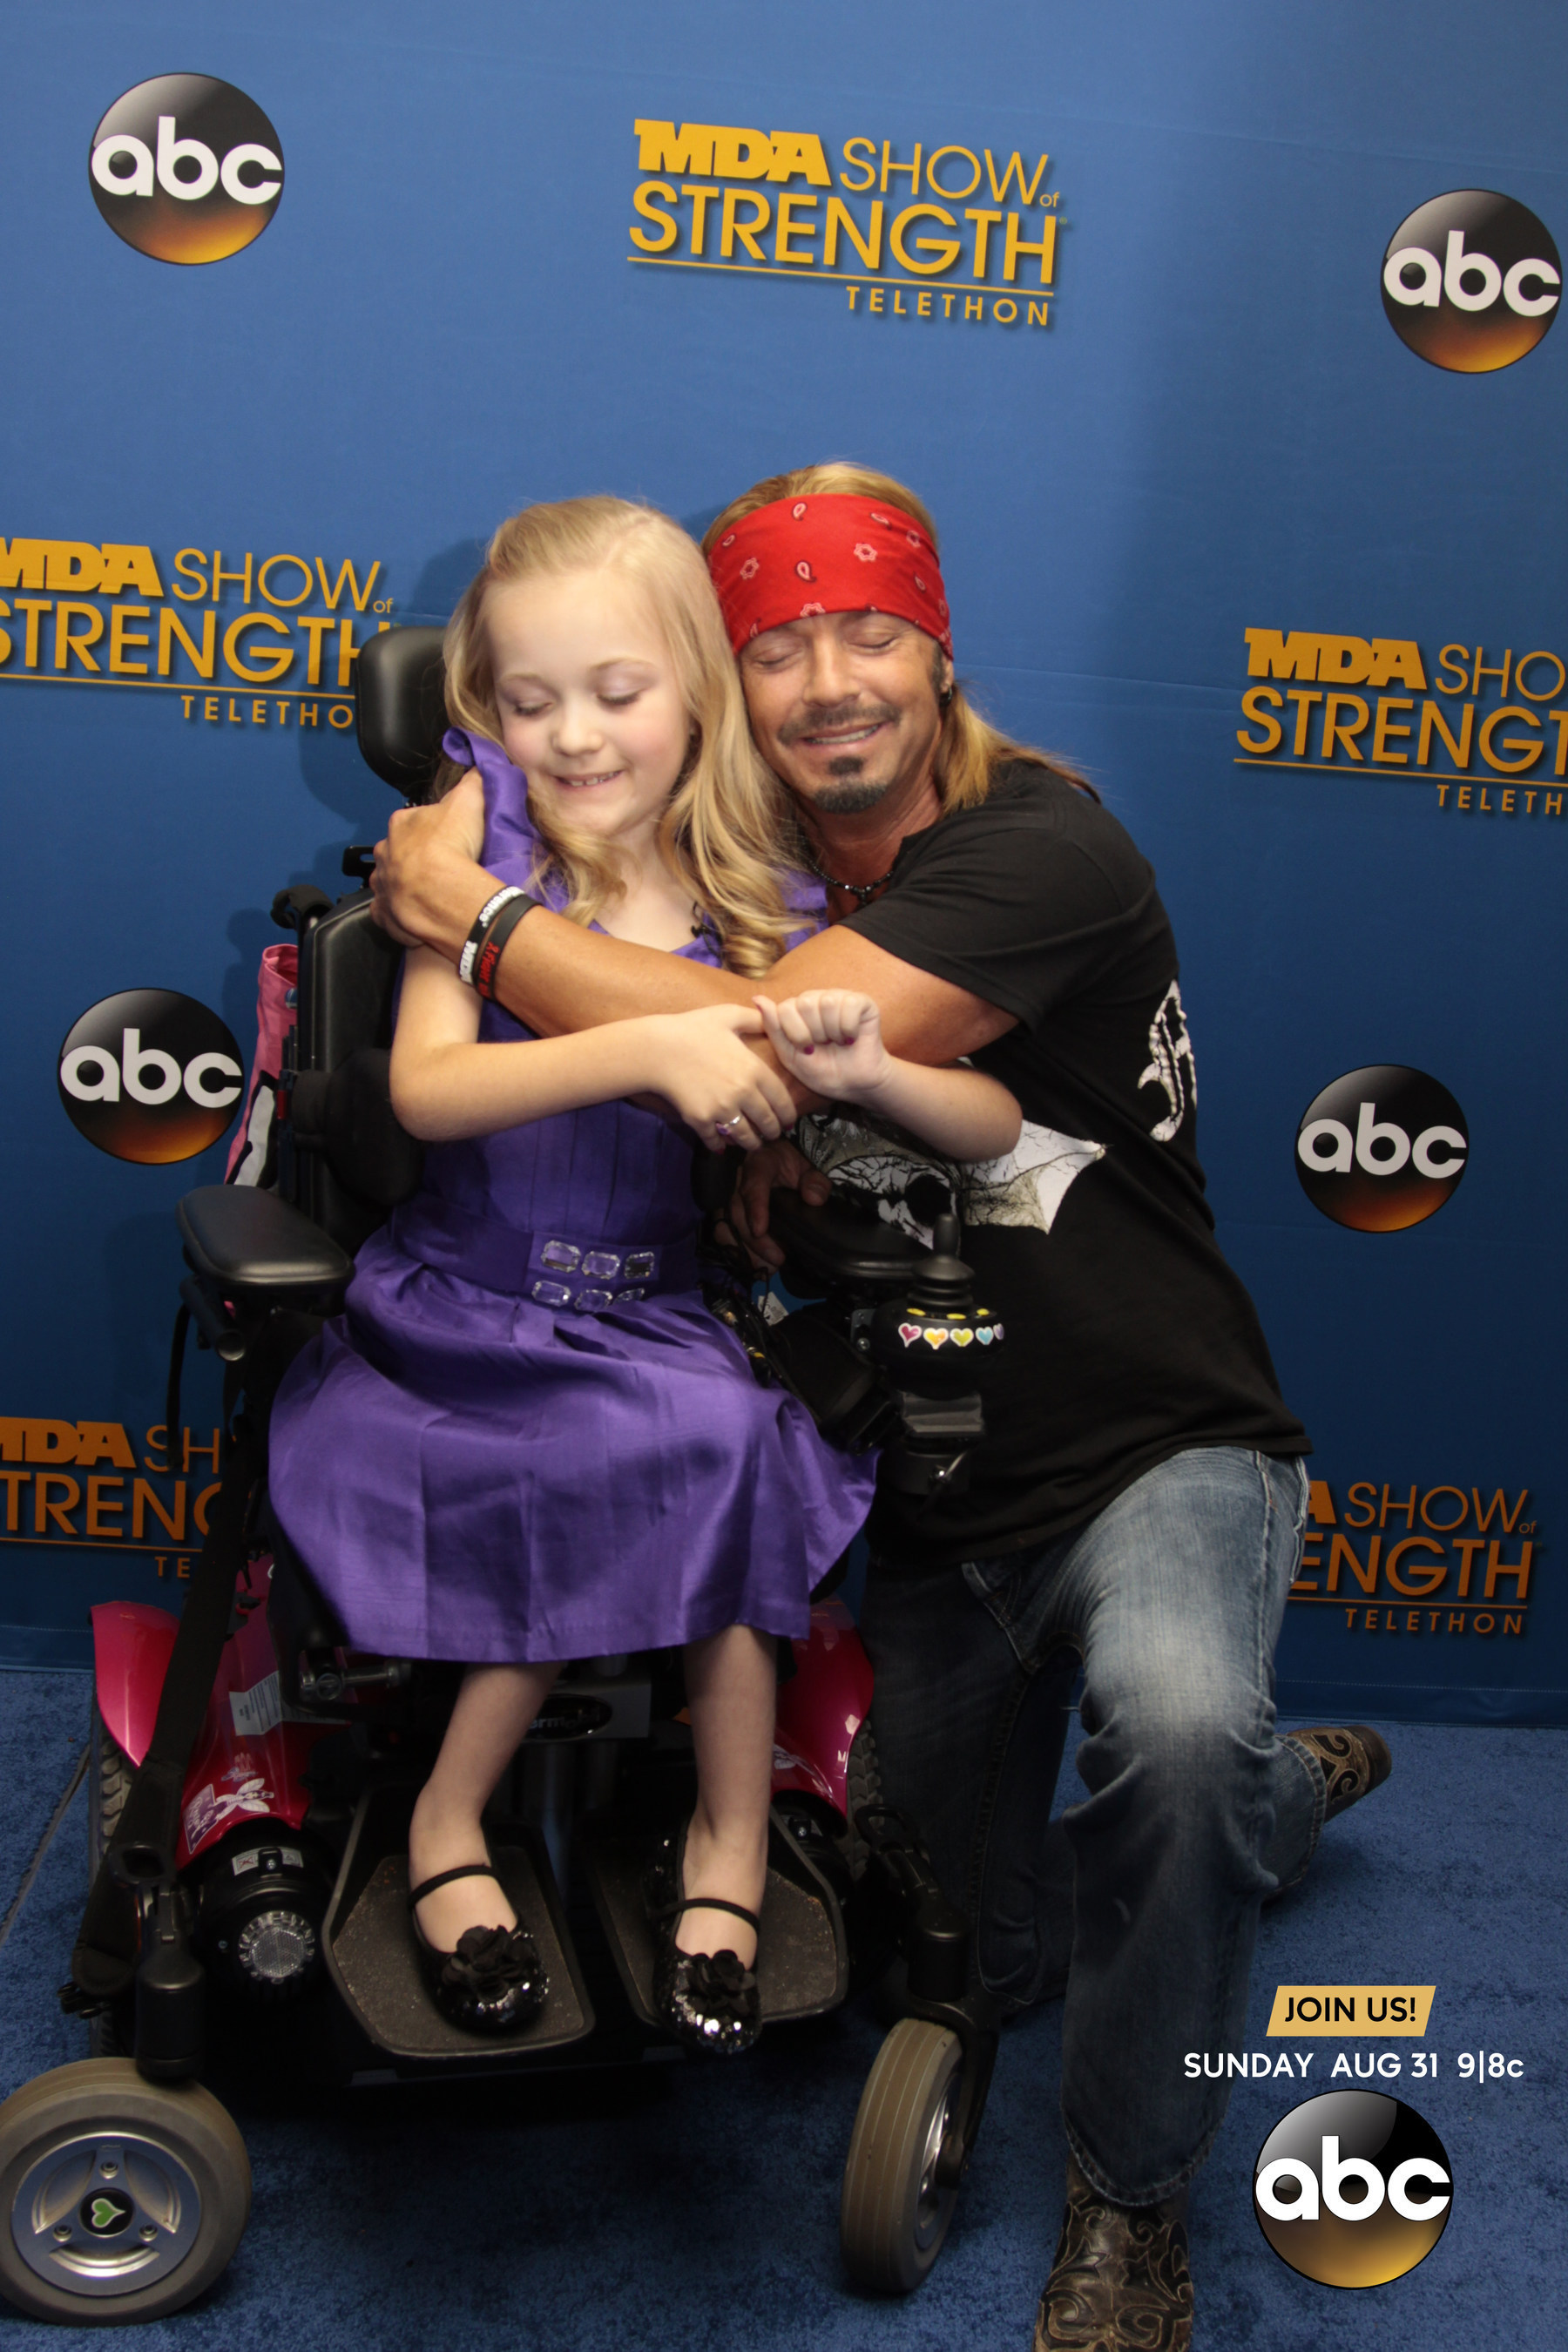 Rock legend Bret Michaels took his support behind-the-scenes at the 2014 MDA Show of Strength Telethon, airing tonight on ABC stations nationwide, to meet with families served by the Muscular Dystrophy Association. Michaels pledged a $10,000 donation to MDA's National Goodwill Ambassador, 9-year old Reagan Imhoff on the blue carpet to help support MDA's mission to save and improve lives of children and adults affected by muscle disease. (PRNewsFoto/Muscular Dystrophy Association)